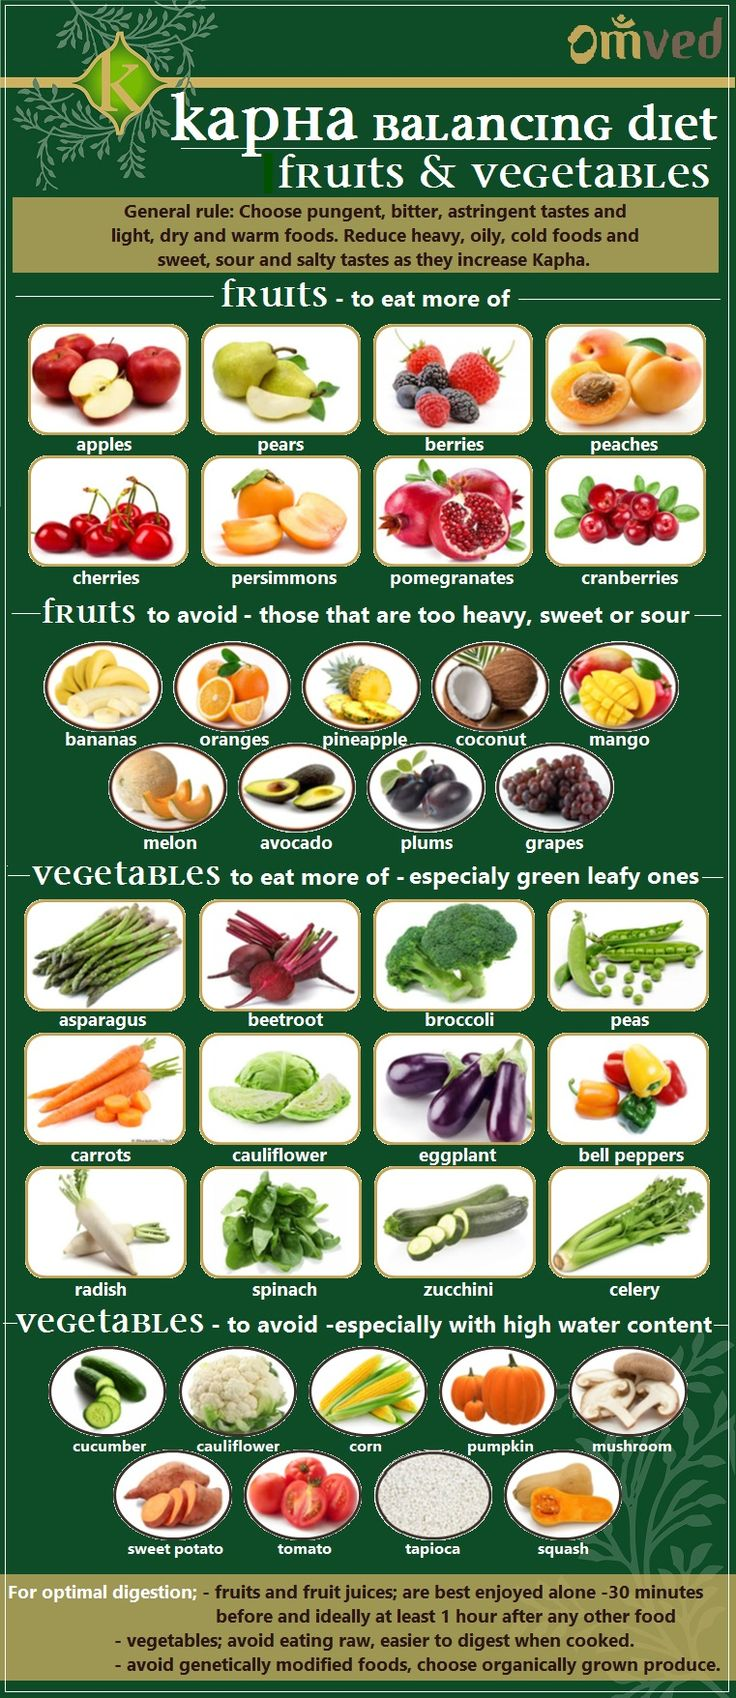 KAPHA Fruits & Vegetables - Ayurveda states that a person should choose his diet depending on his dosha. So, a person in whom the Kapha dosha is dominant should eat diet, which will pacify the Kapha dosha. Here are some suggestions on which fruits and veggies to include and which to avoid in a kapha balancing diet.